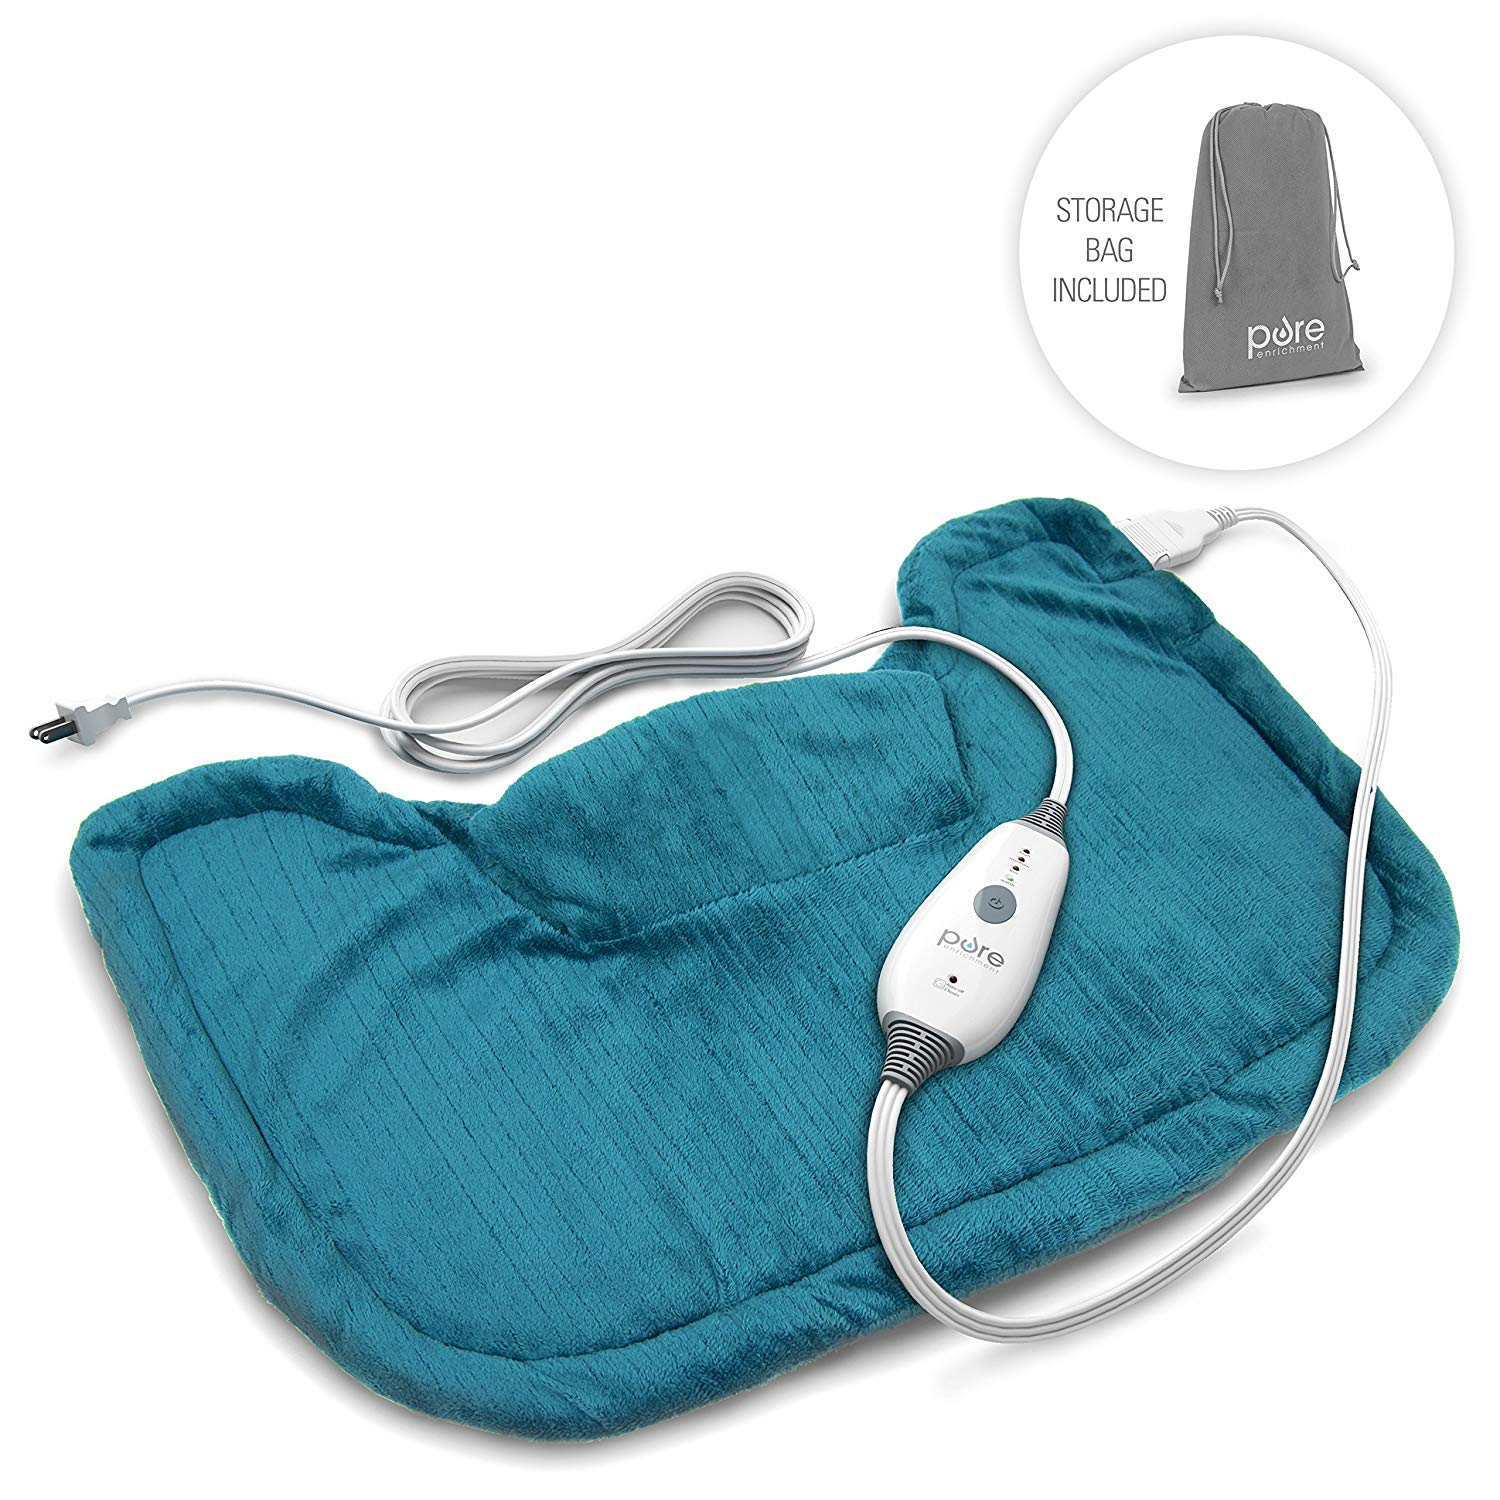 Pure Enrichment PureRelief Neck and Shoulder Heating Pad (Turquoise Blue) - Fast-Heating Technology with Magnetic Neck Closure, 4 Heat Settings, Moist Heat Therapy...